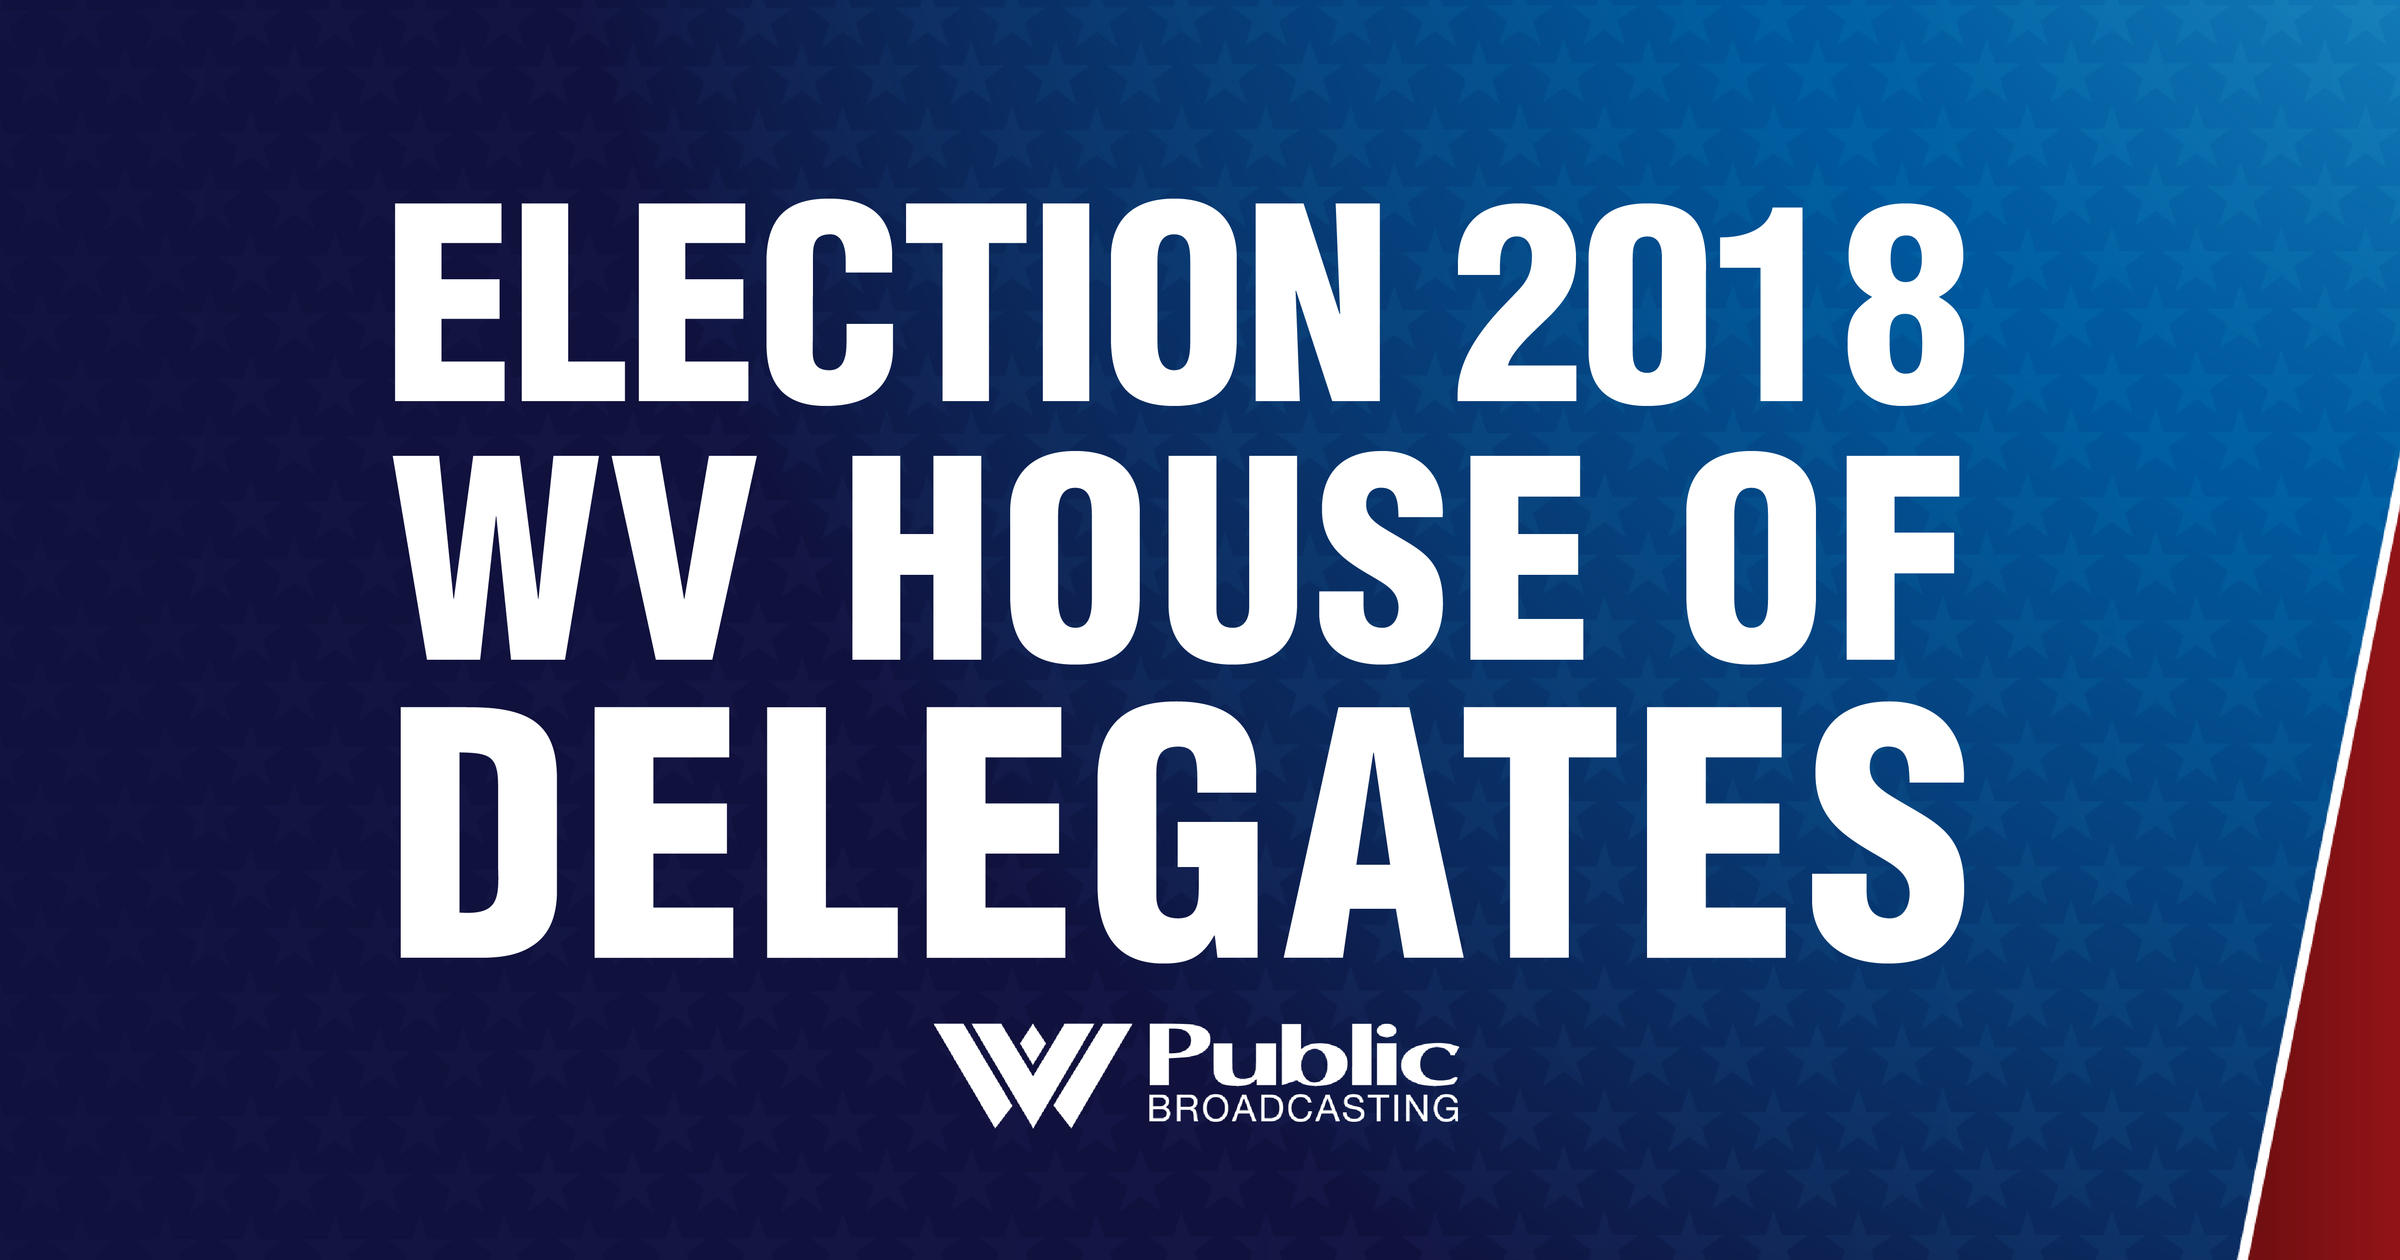 Election 2018: West Virginia House of Delegates | West